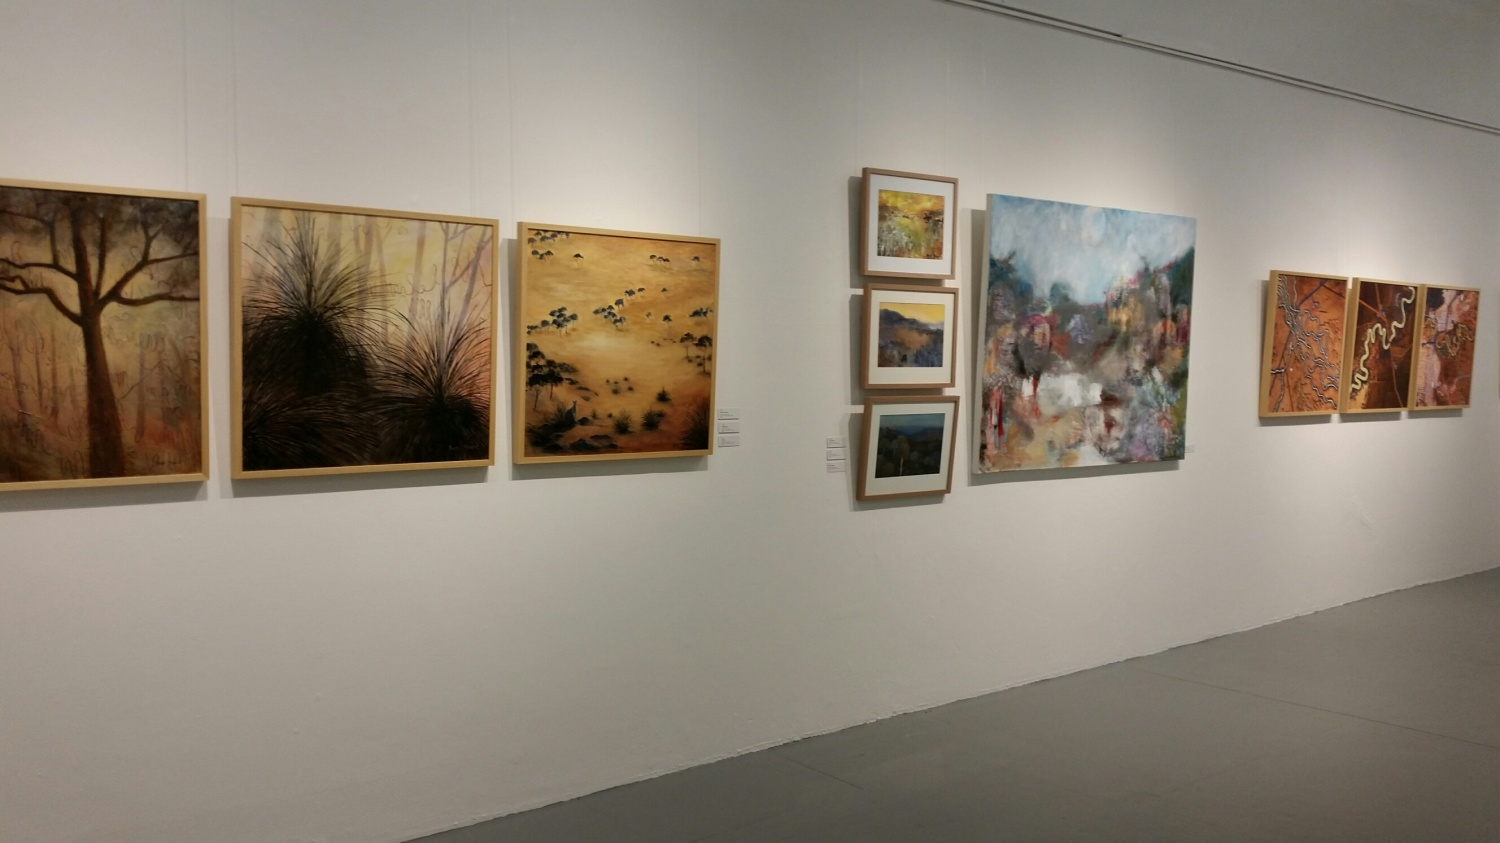 Artworks by Barb Strand and Meg Sprouster (side wall)